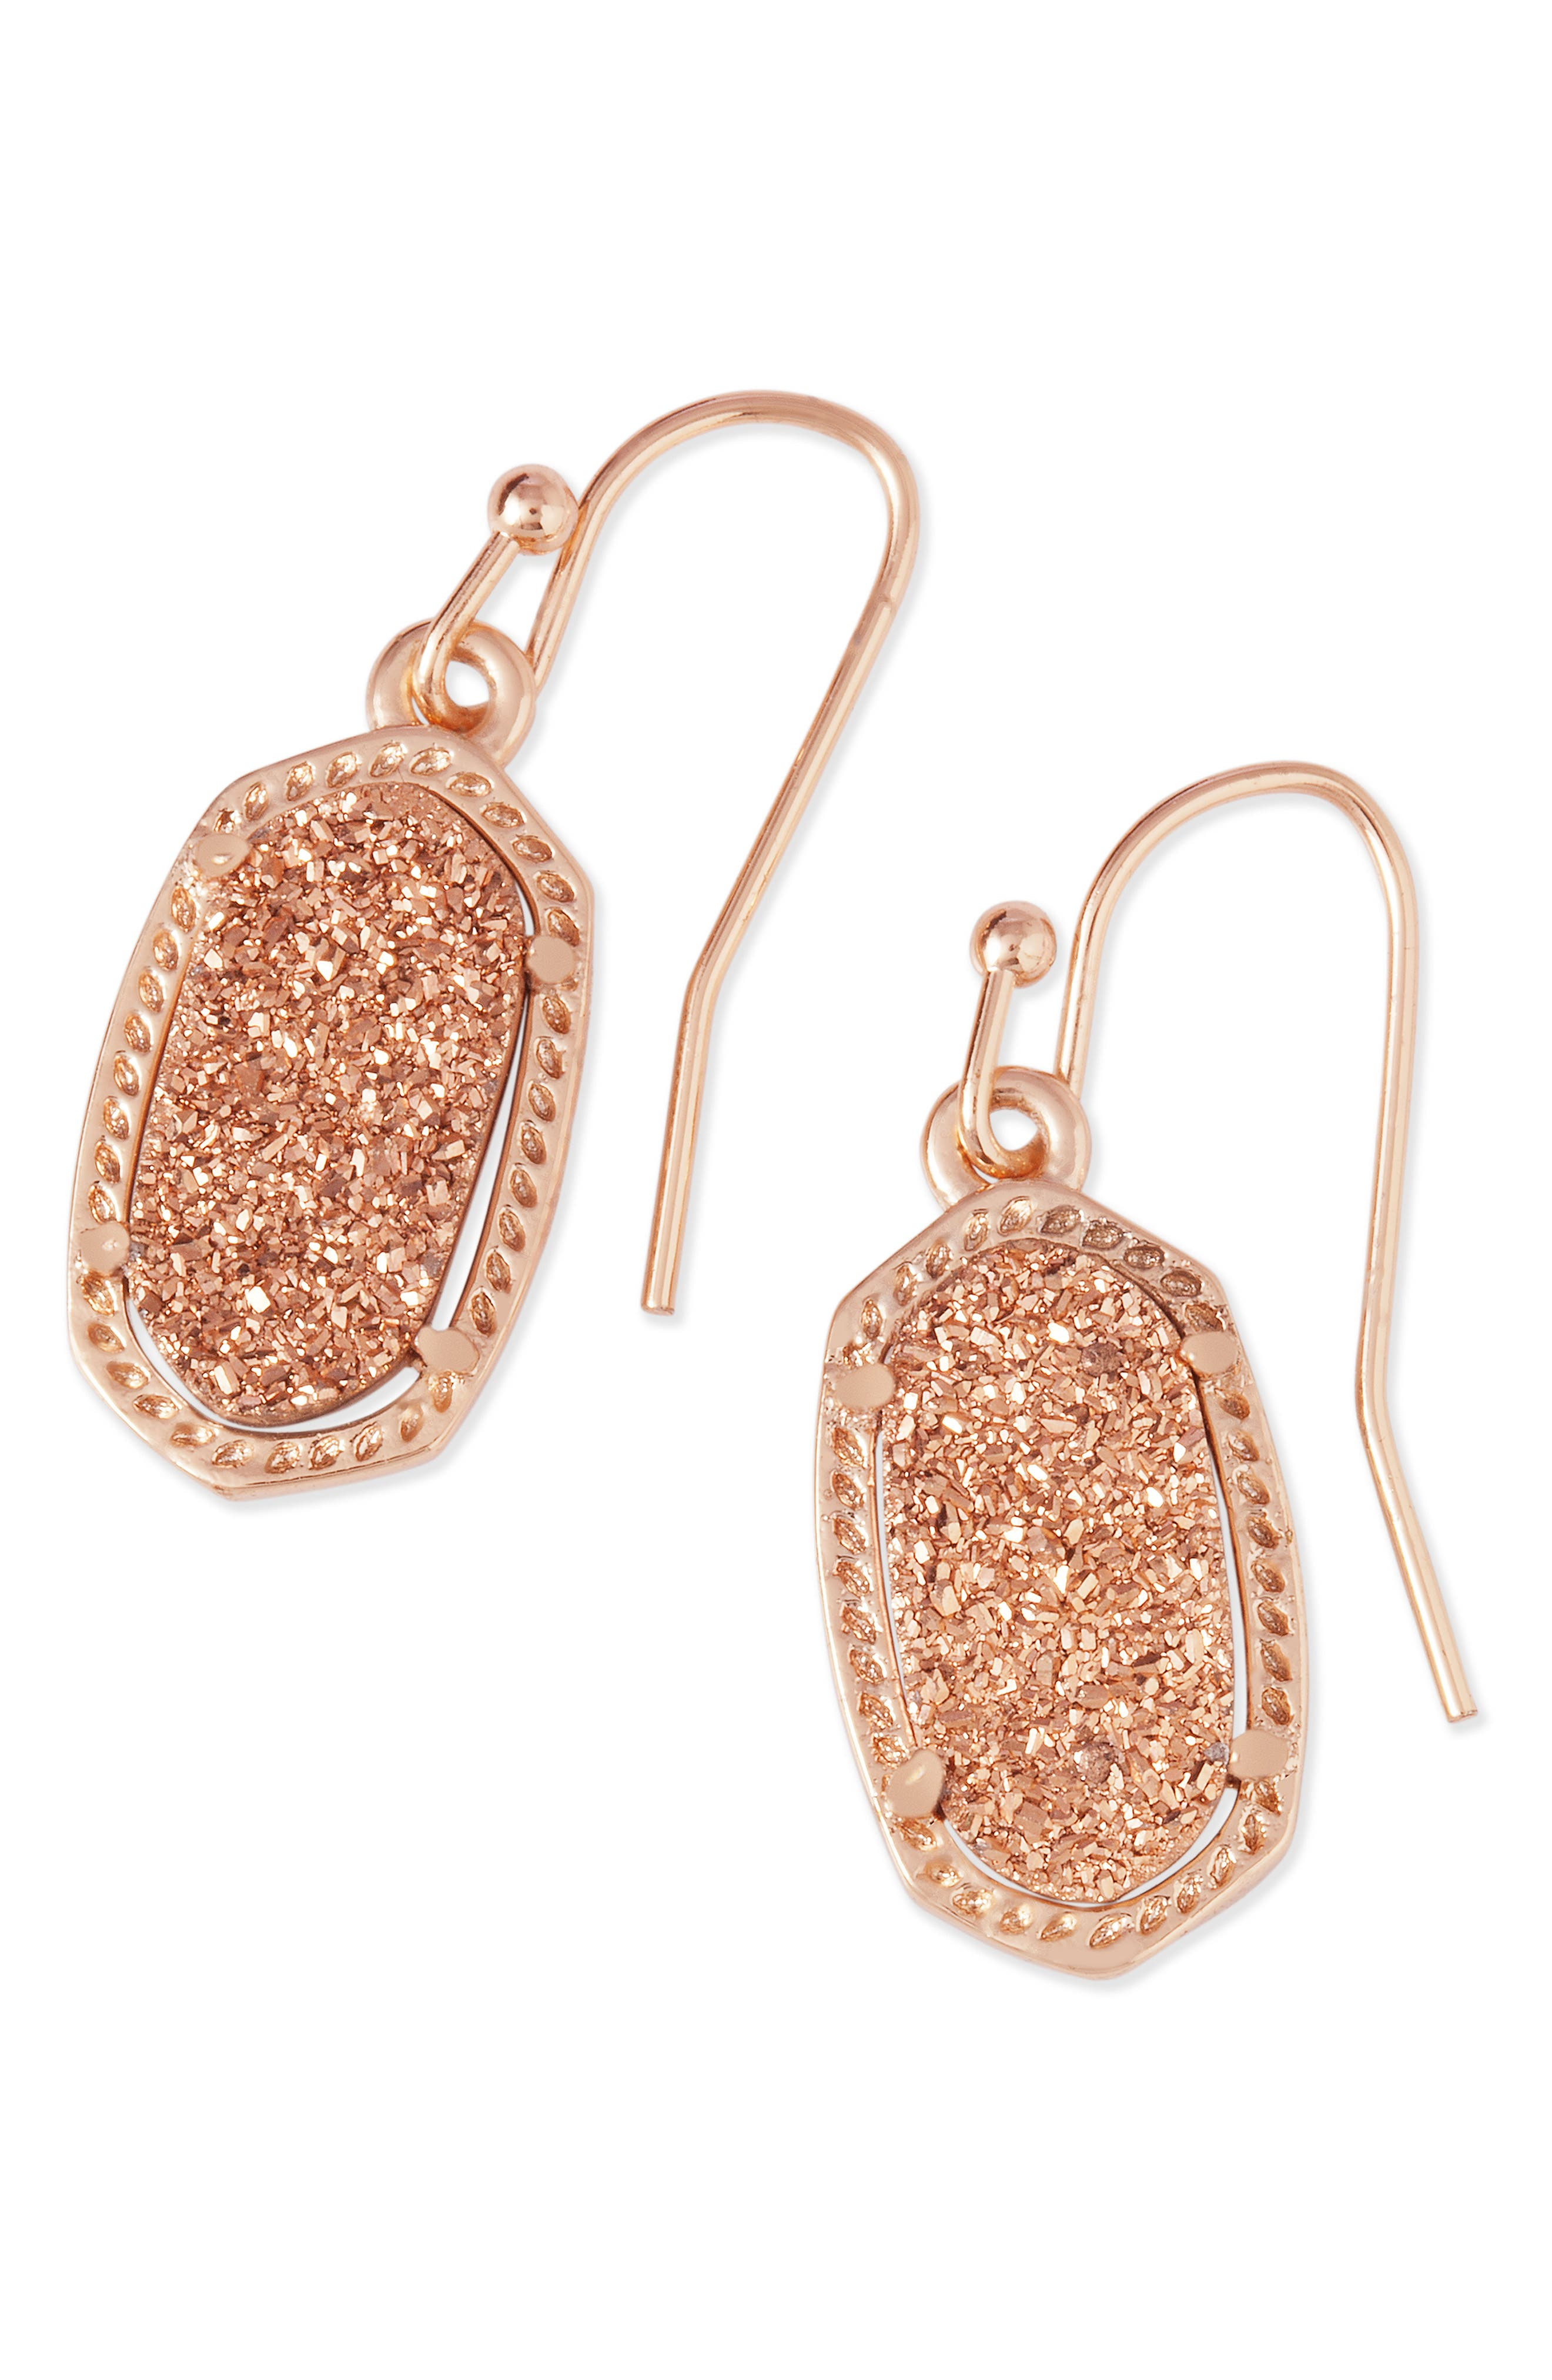 Lee Small Drop Earrings,                             Alternate thumbnail 2, color,                             Rose Drusy/ Rose Gold